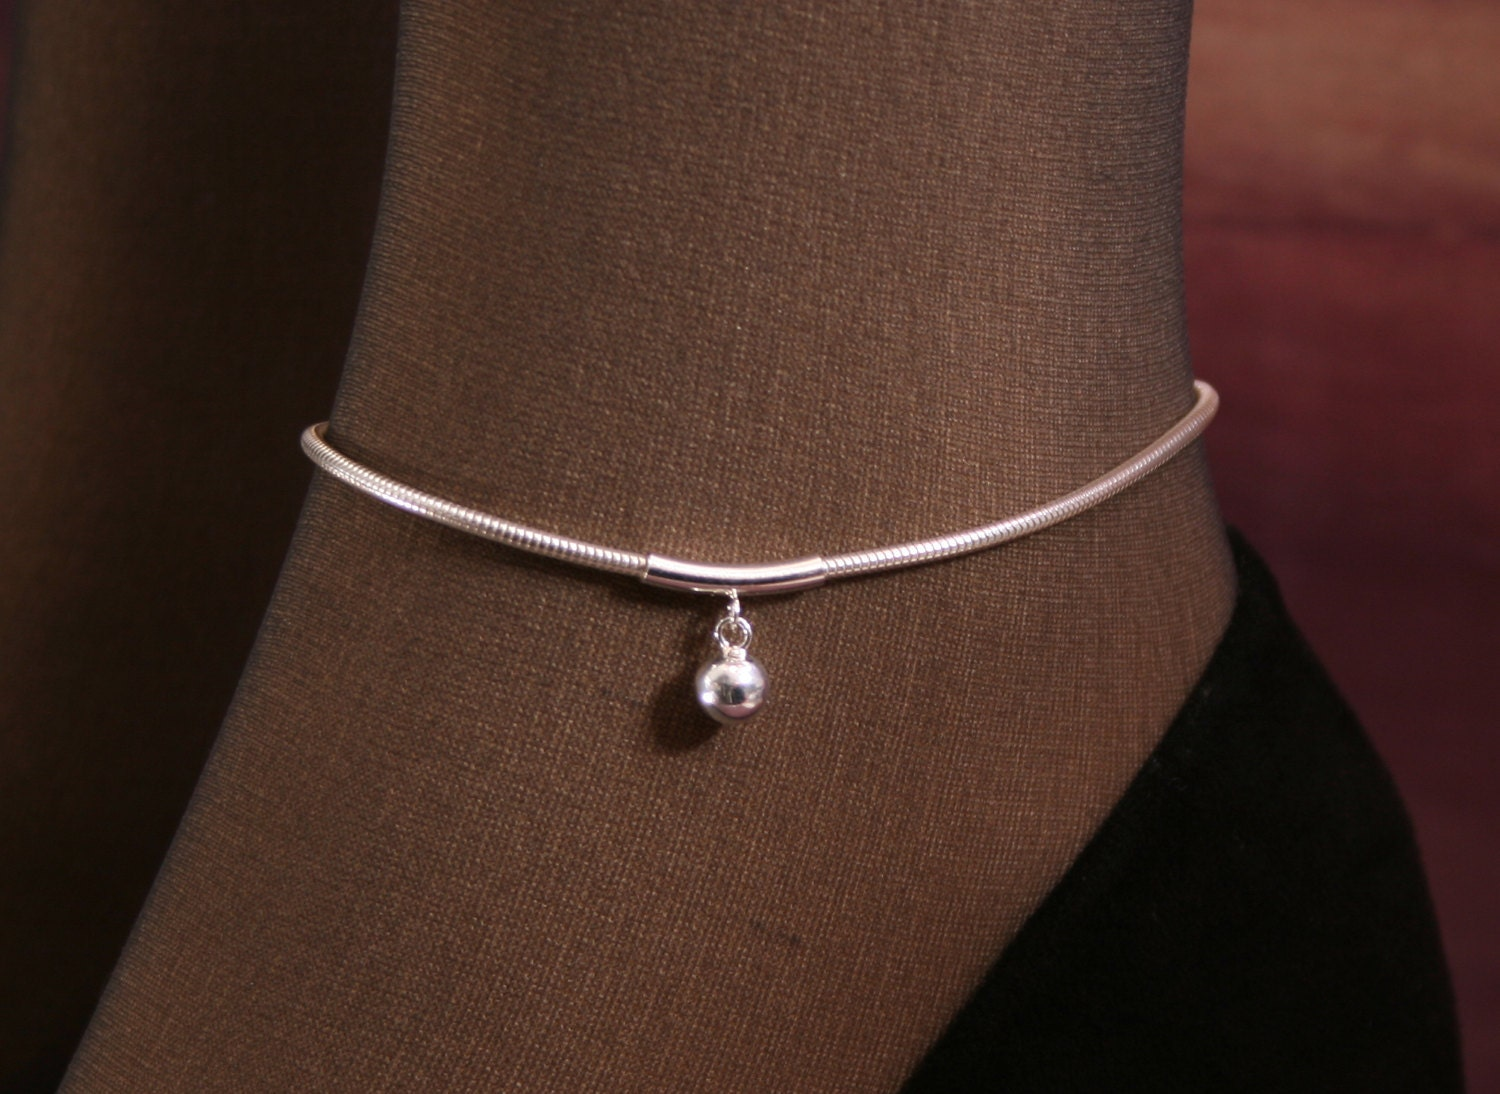 watch into an convert youtube anklet locking bracelet